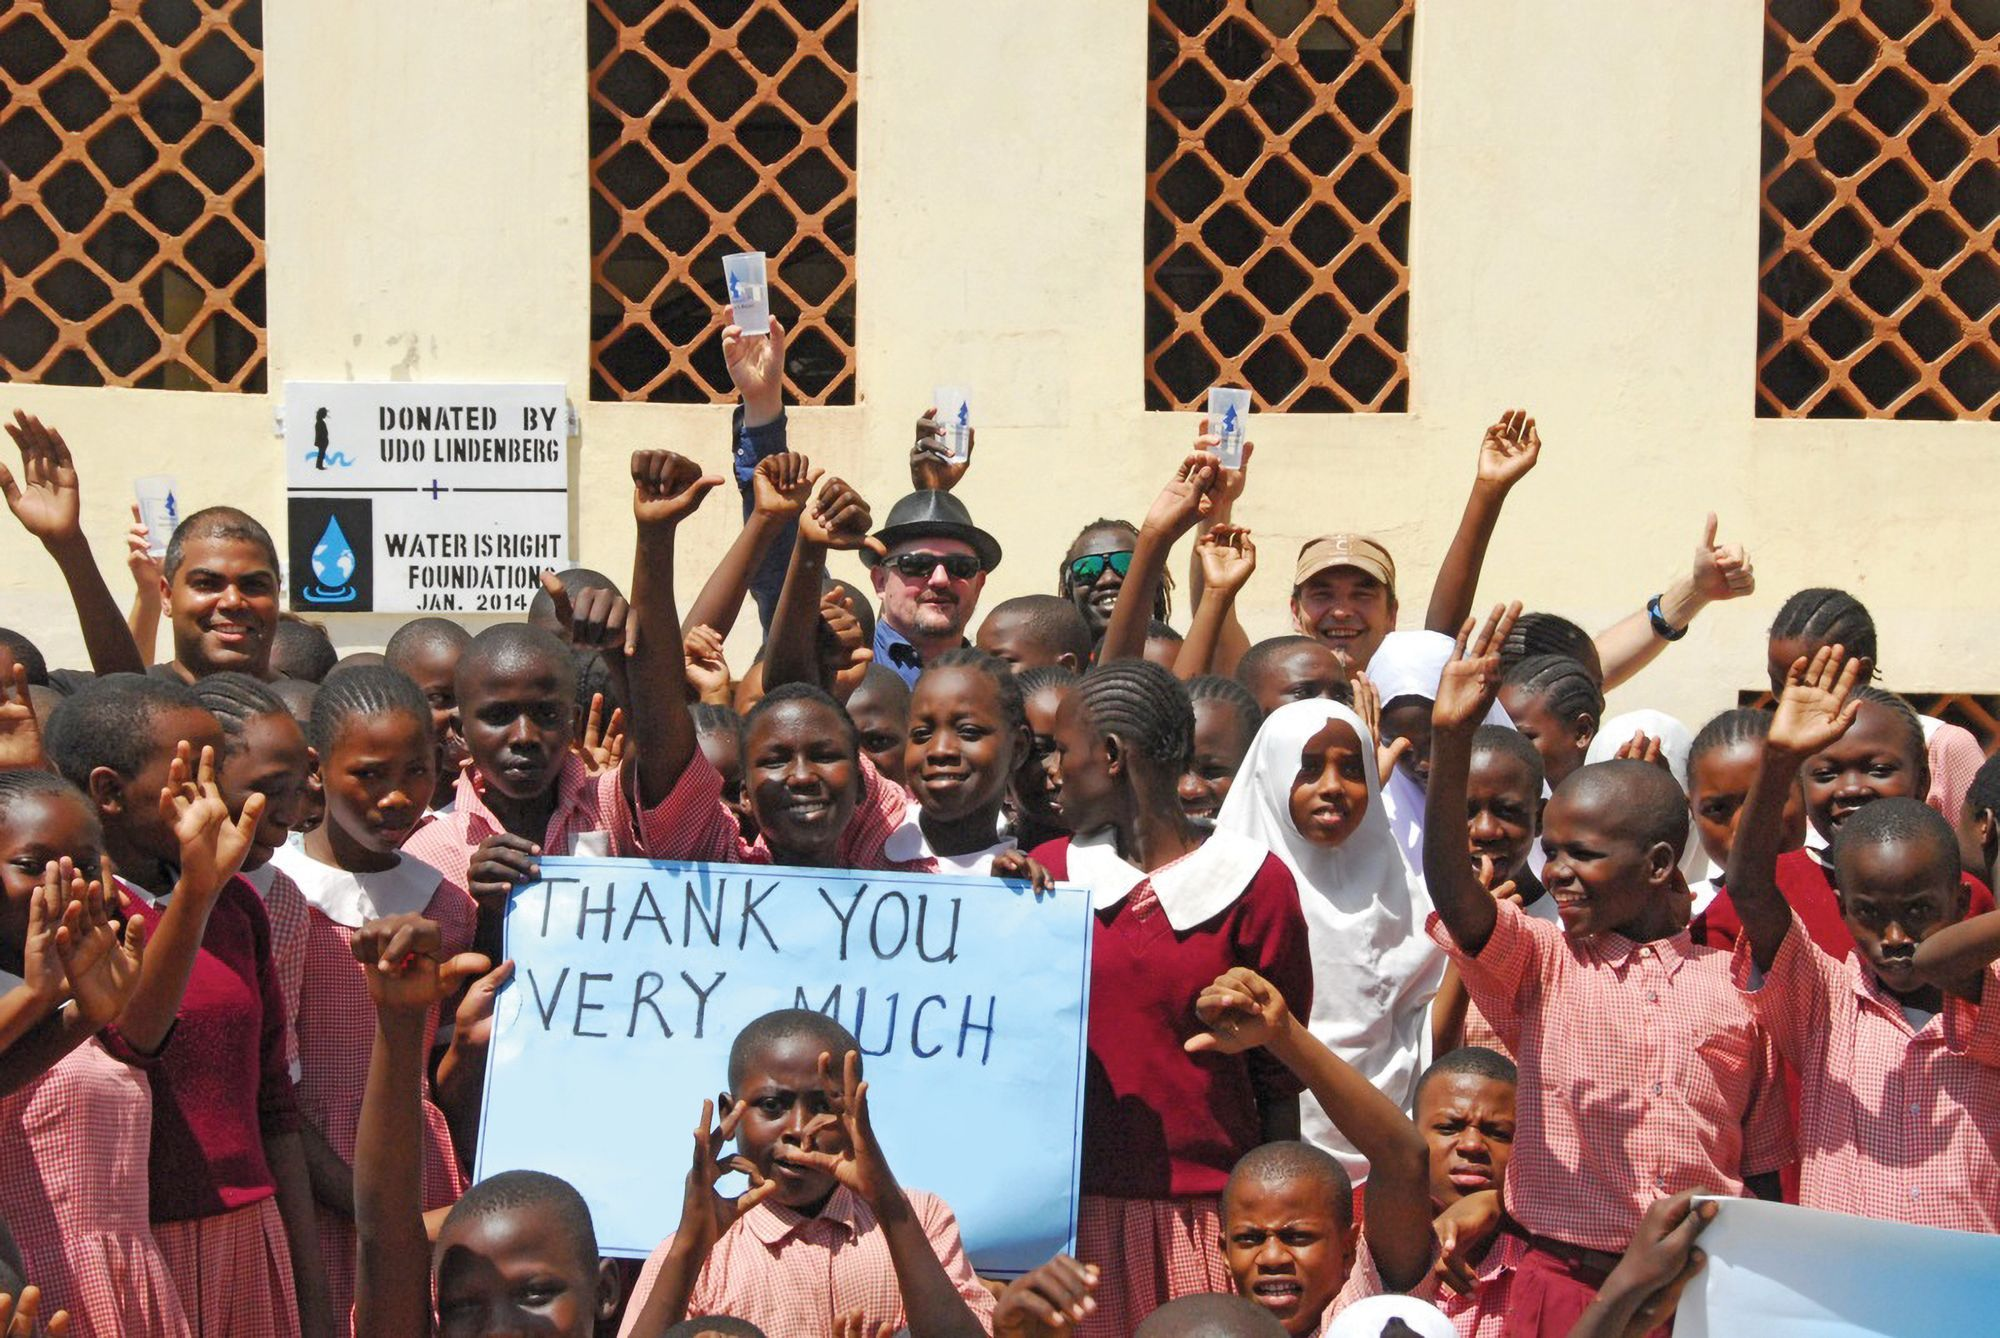 Rolf Stahlhofen, founder of the Water is Right foundation, with children in Africa. Picture: Water is Right Foundation